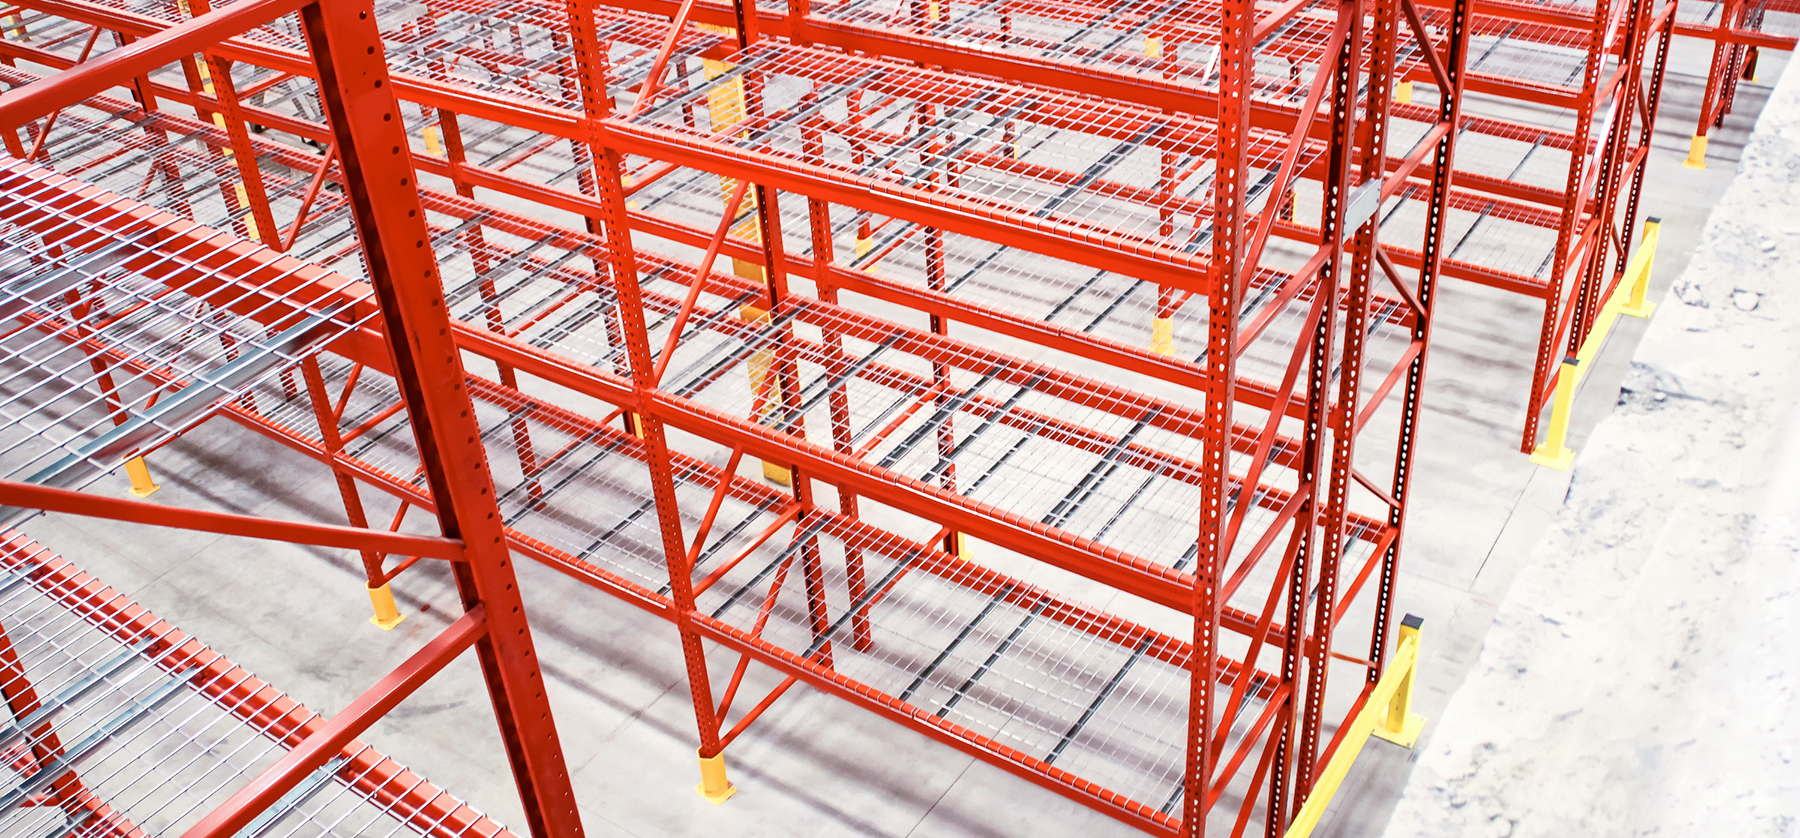 Custom colored galvanized pallet racks with post protectors, end of aisle guards, and mesh decking